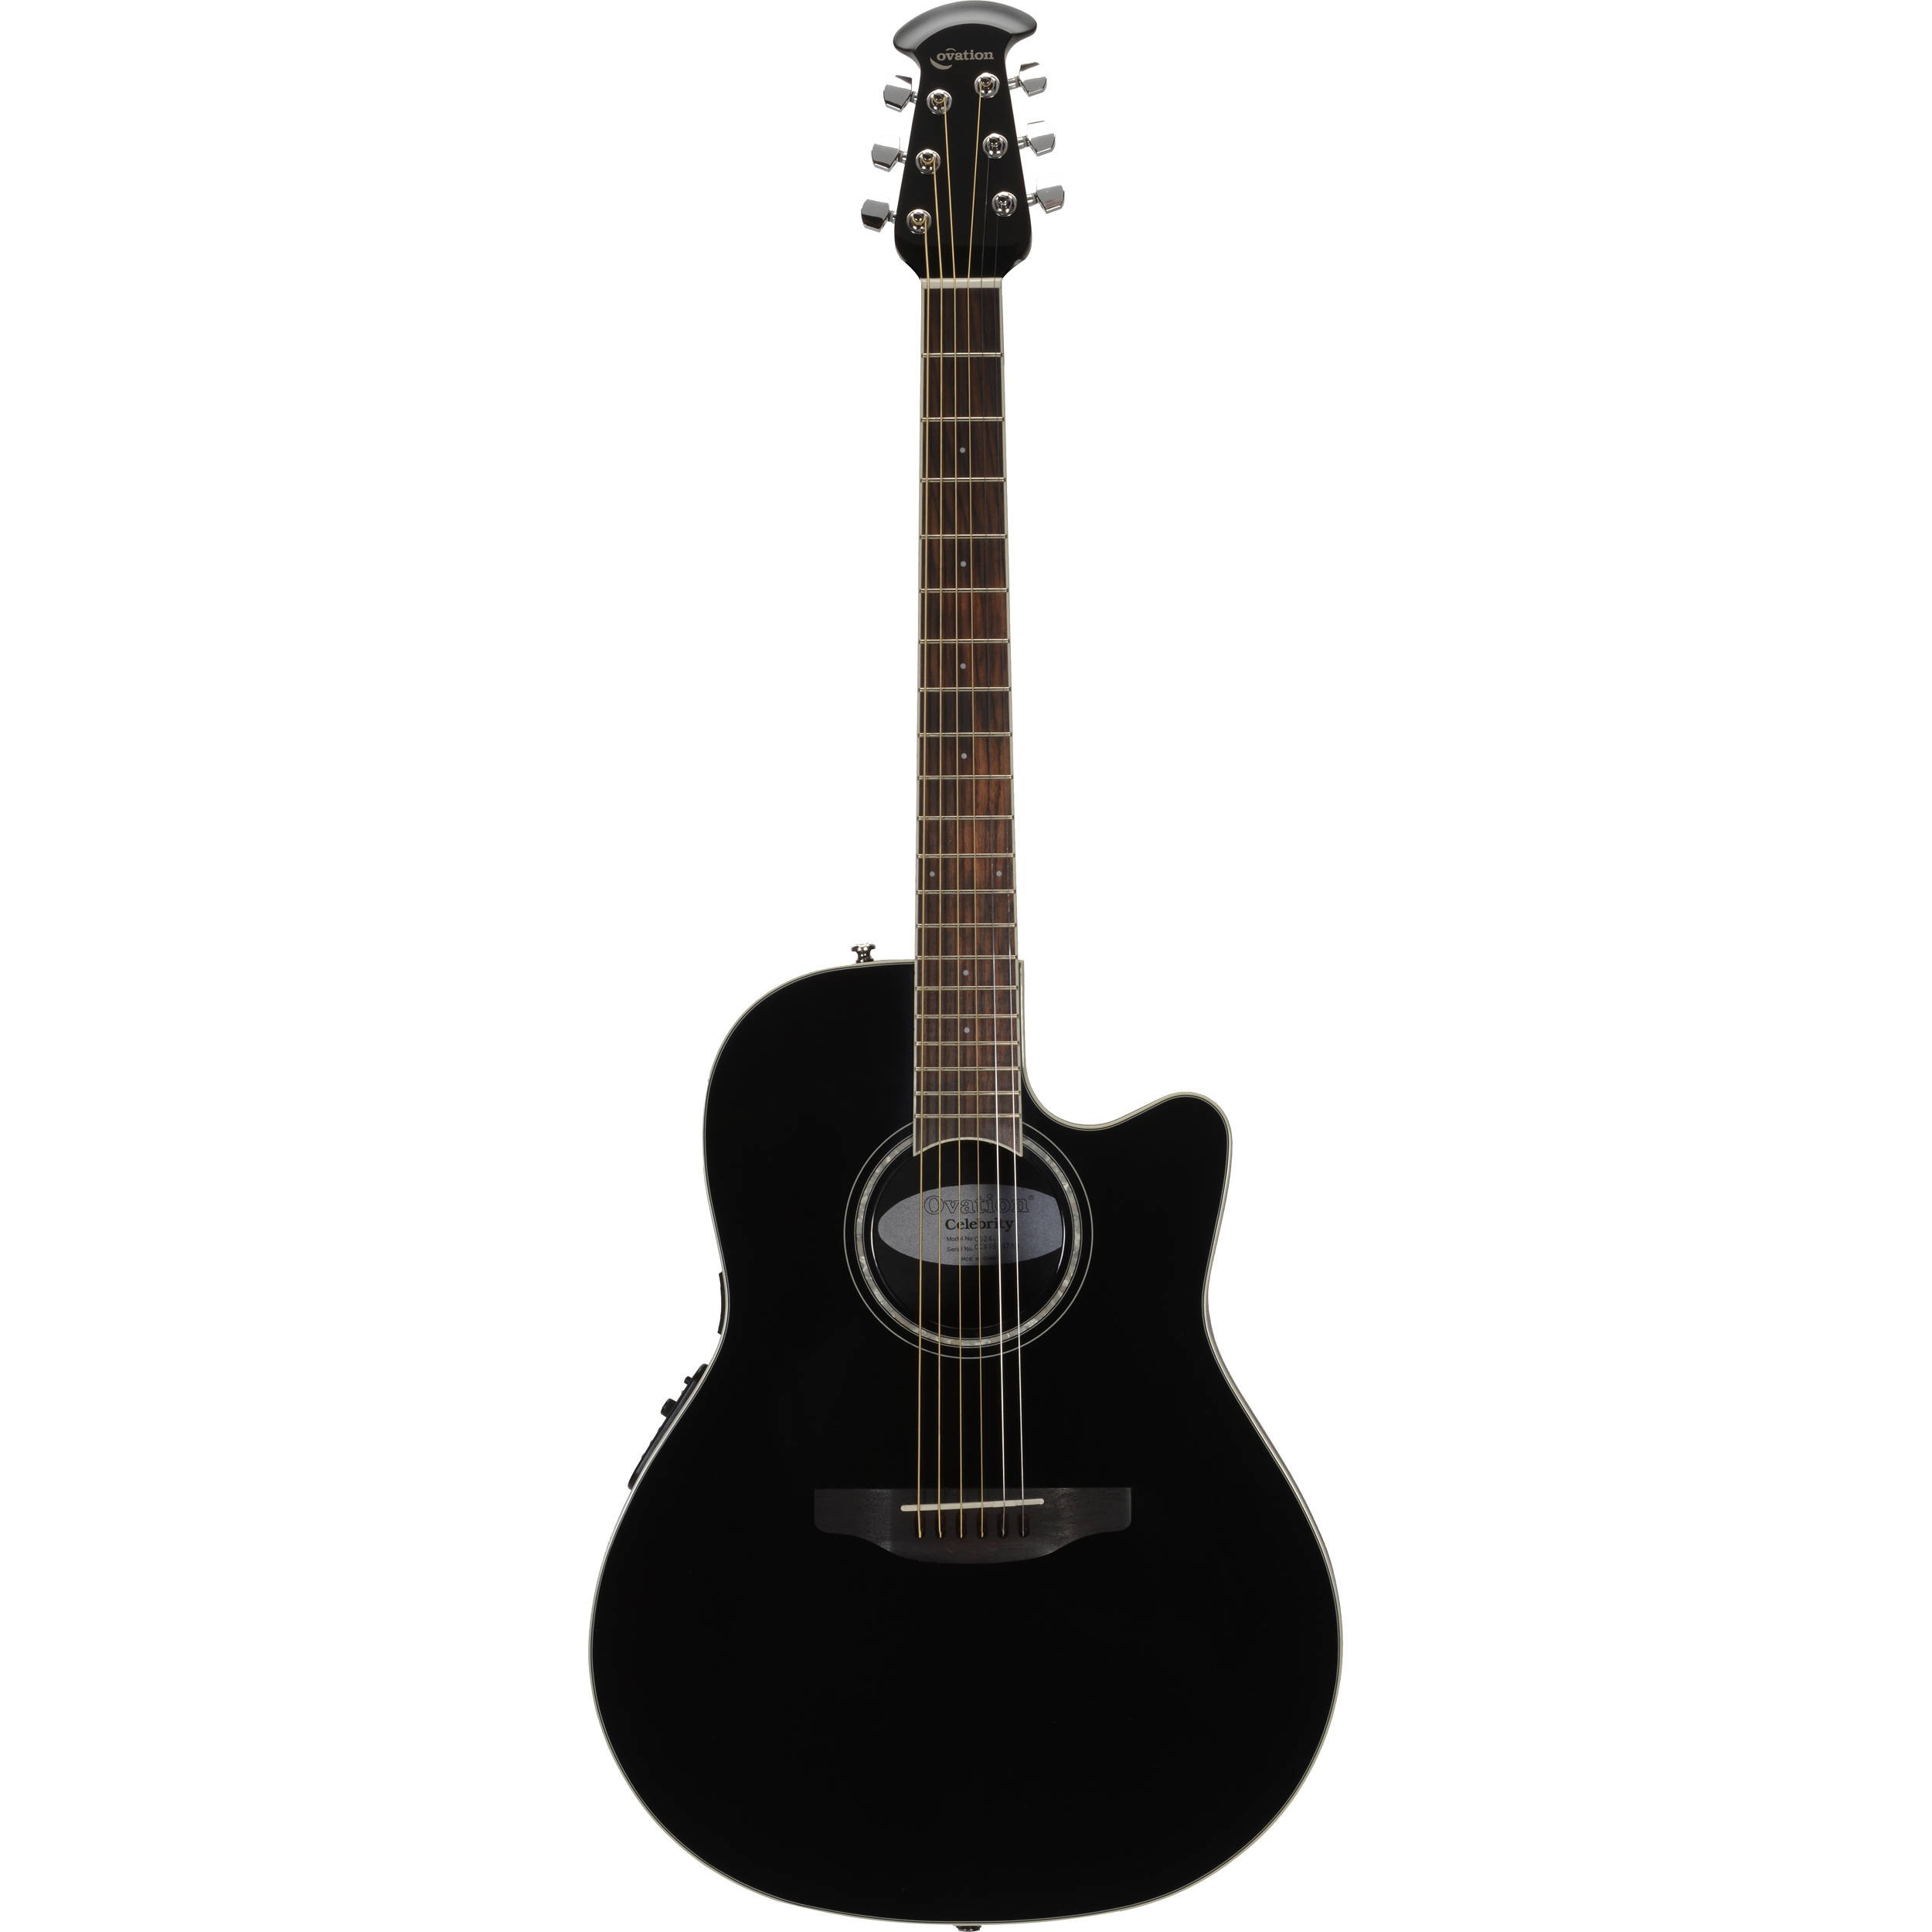 Ovation Celebrity Standard CS24 Acoustic-electric Guitar ...